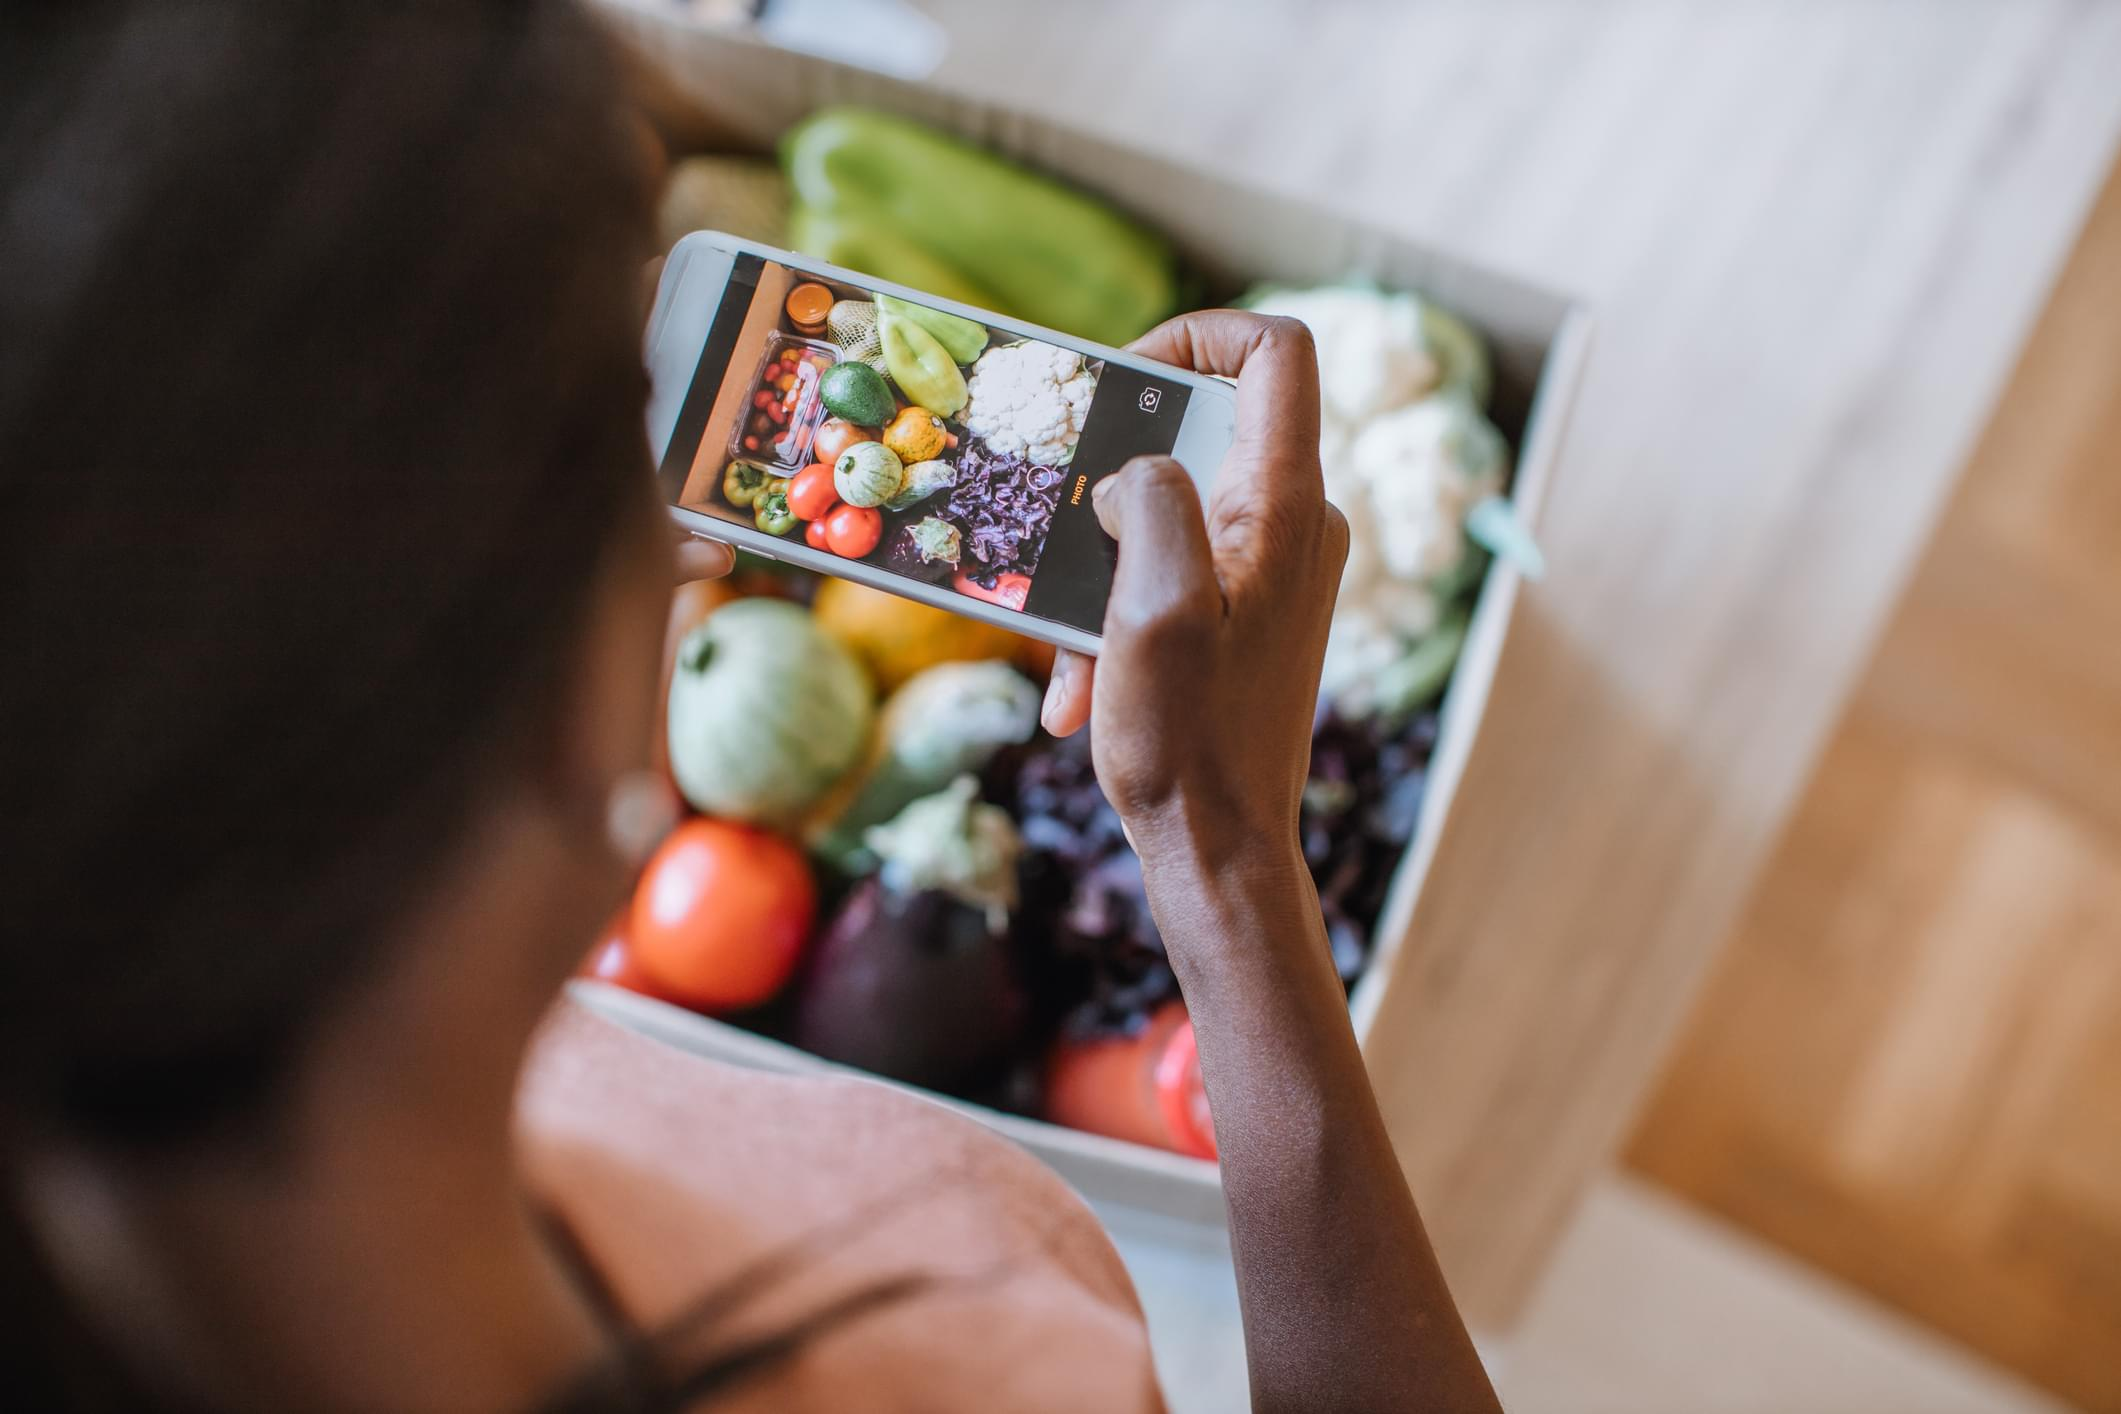 Woman Photographing Groceries In Meal Kit